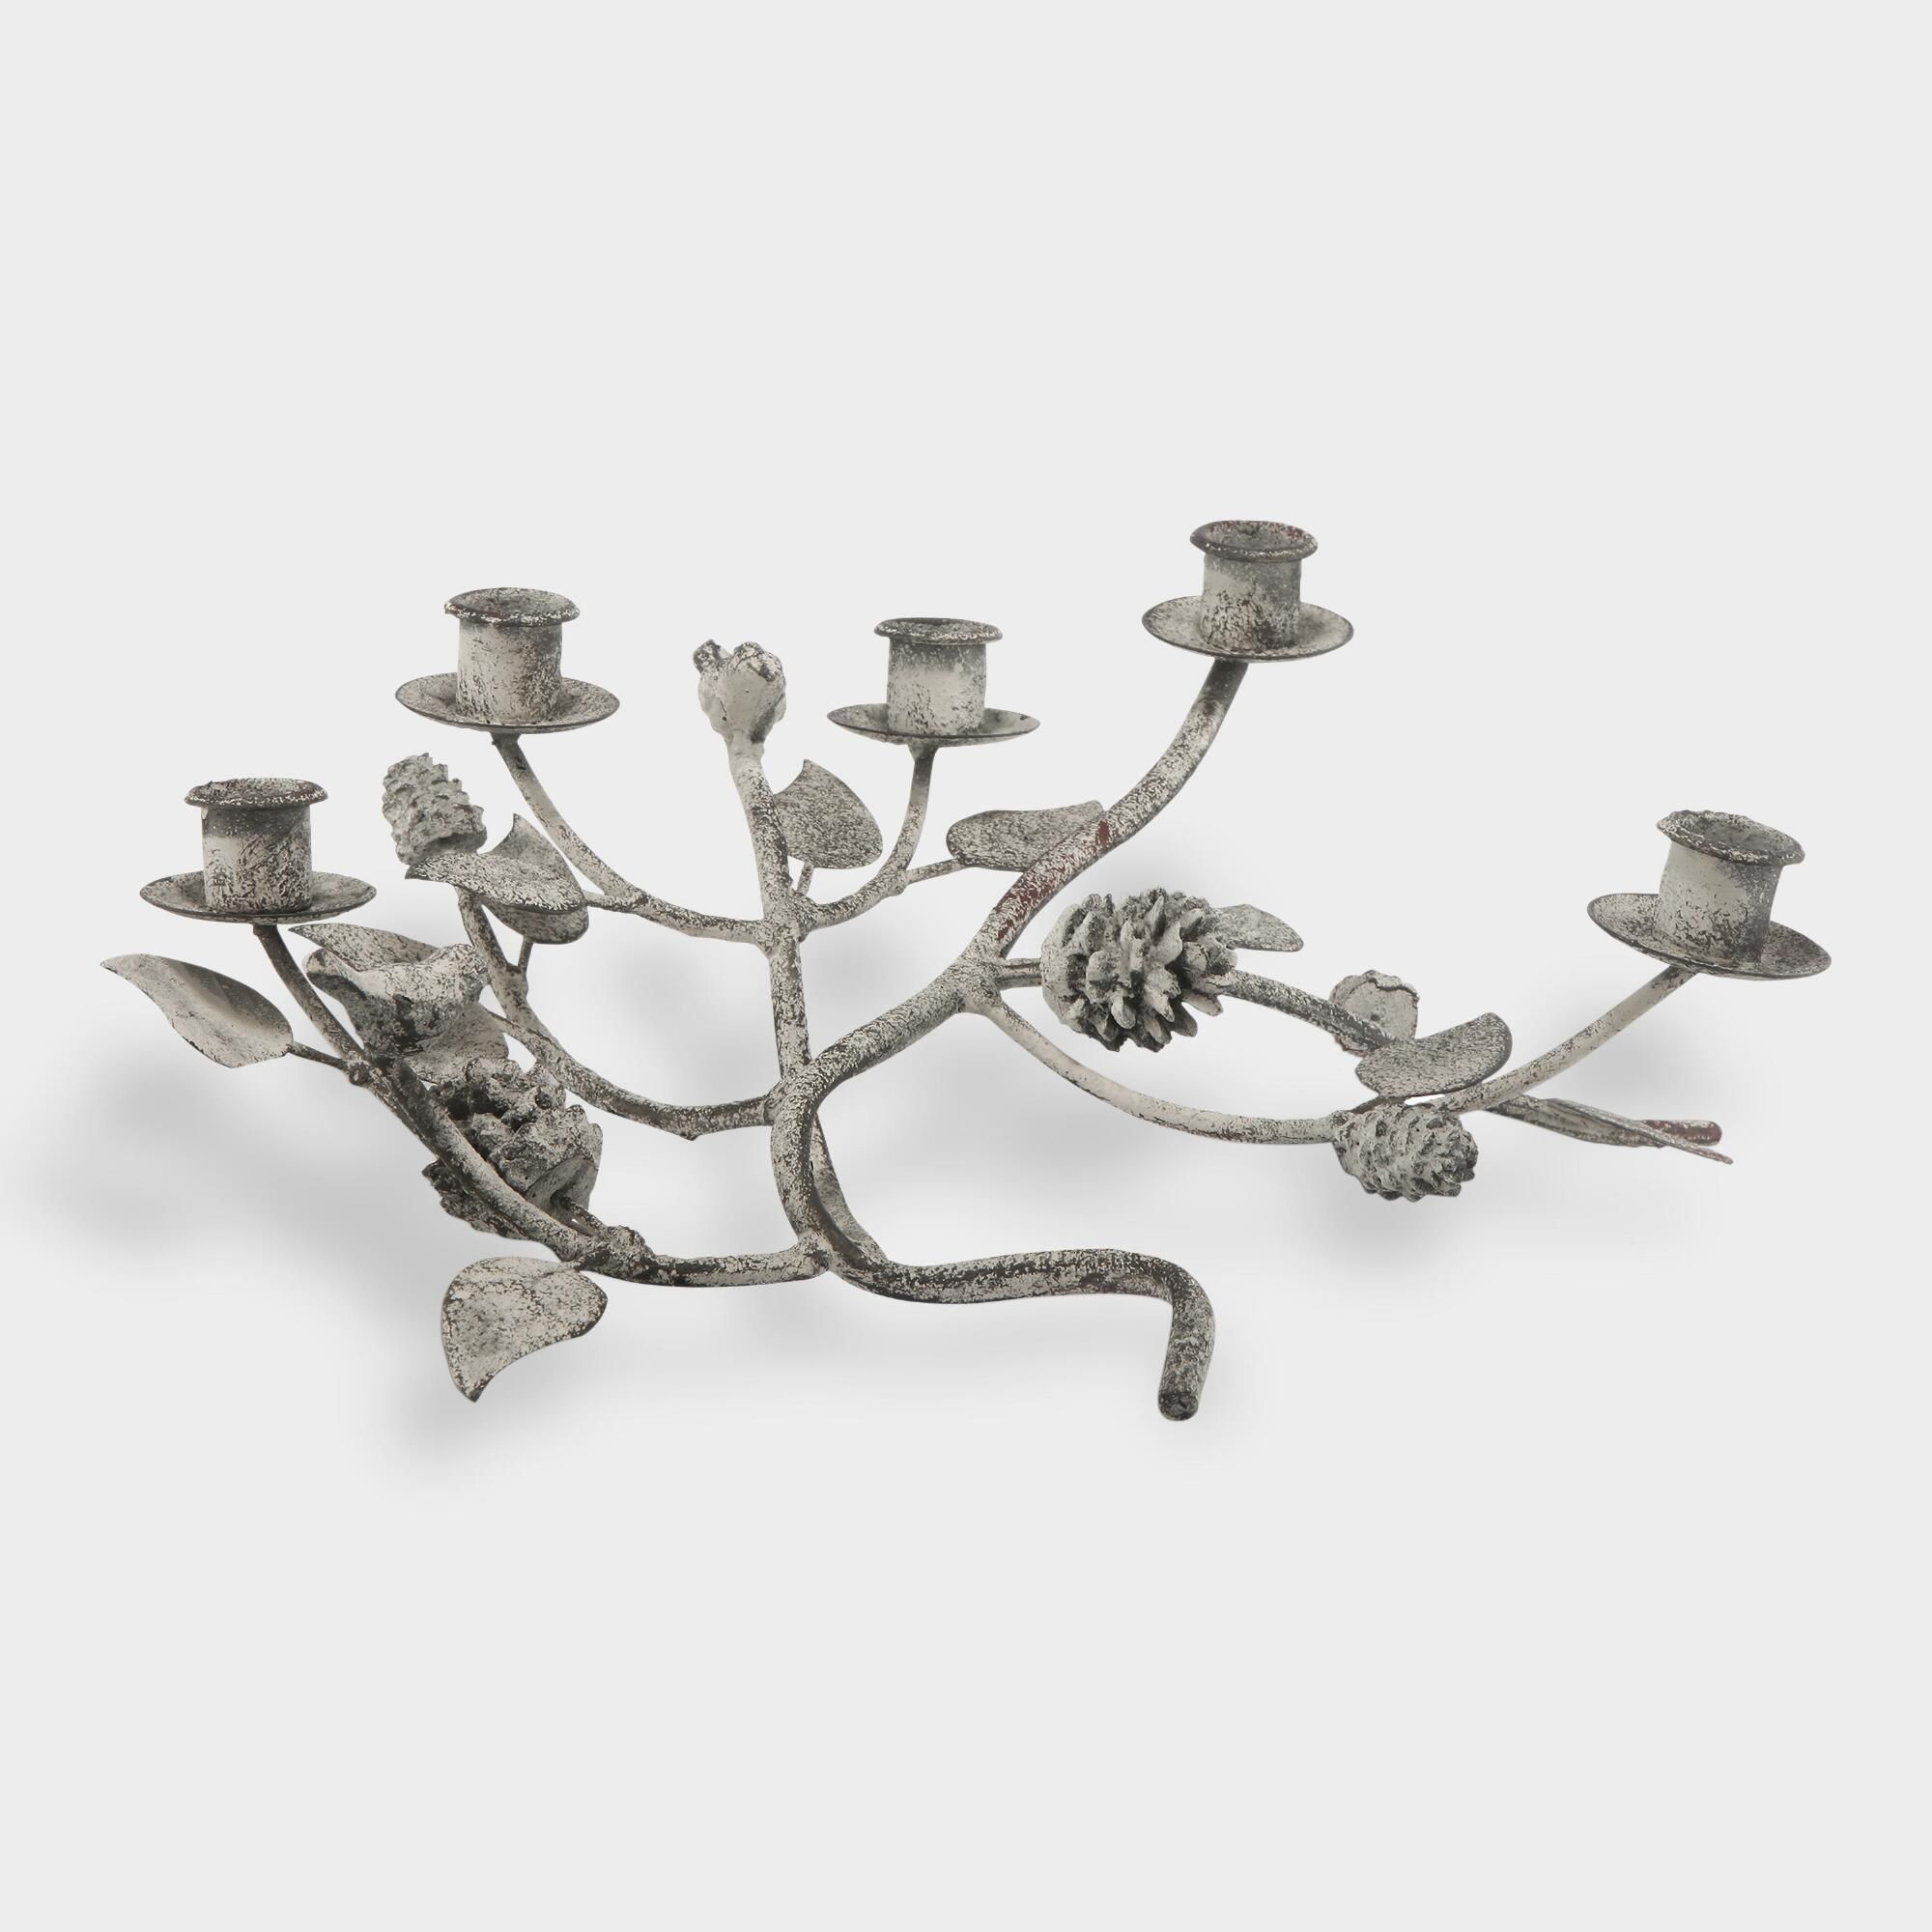 Antique metal tree branch taper candleholder by world market